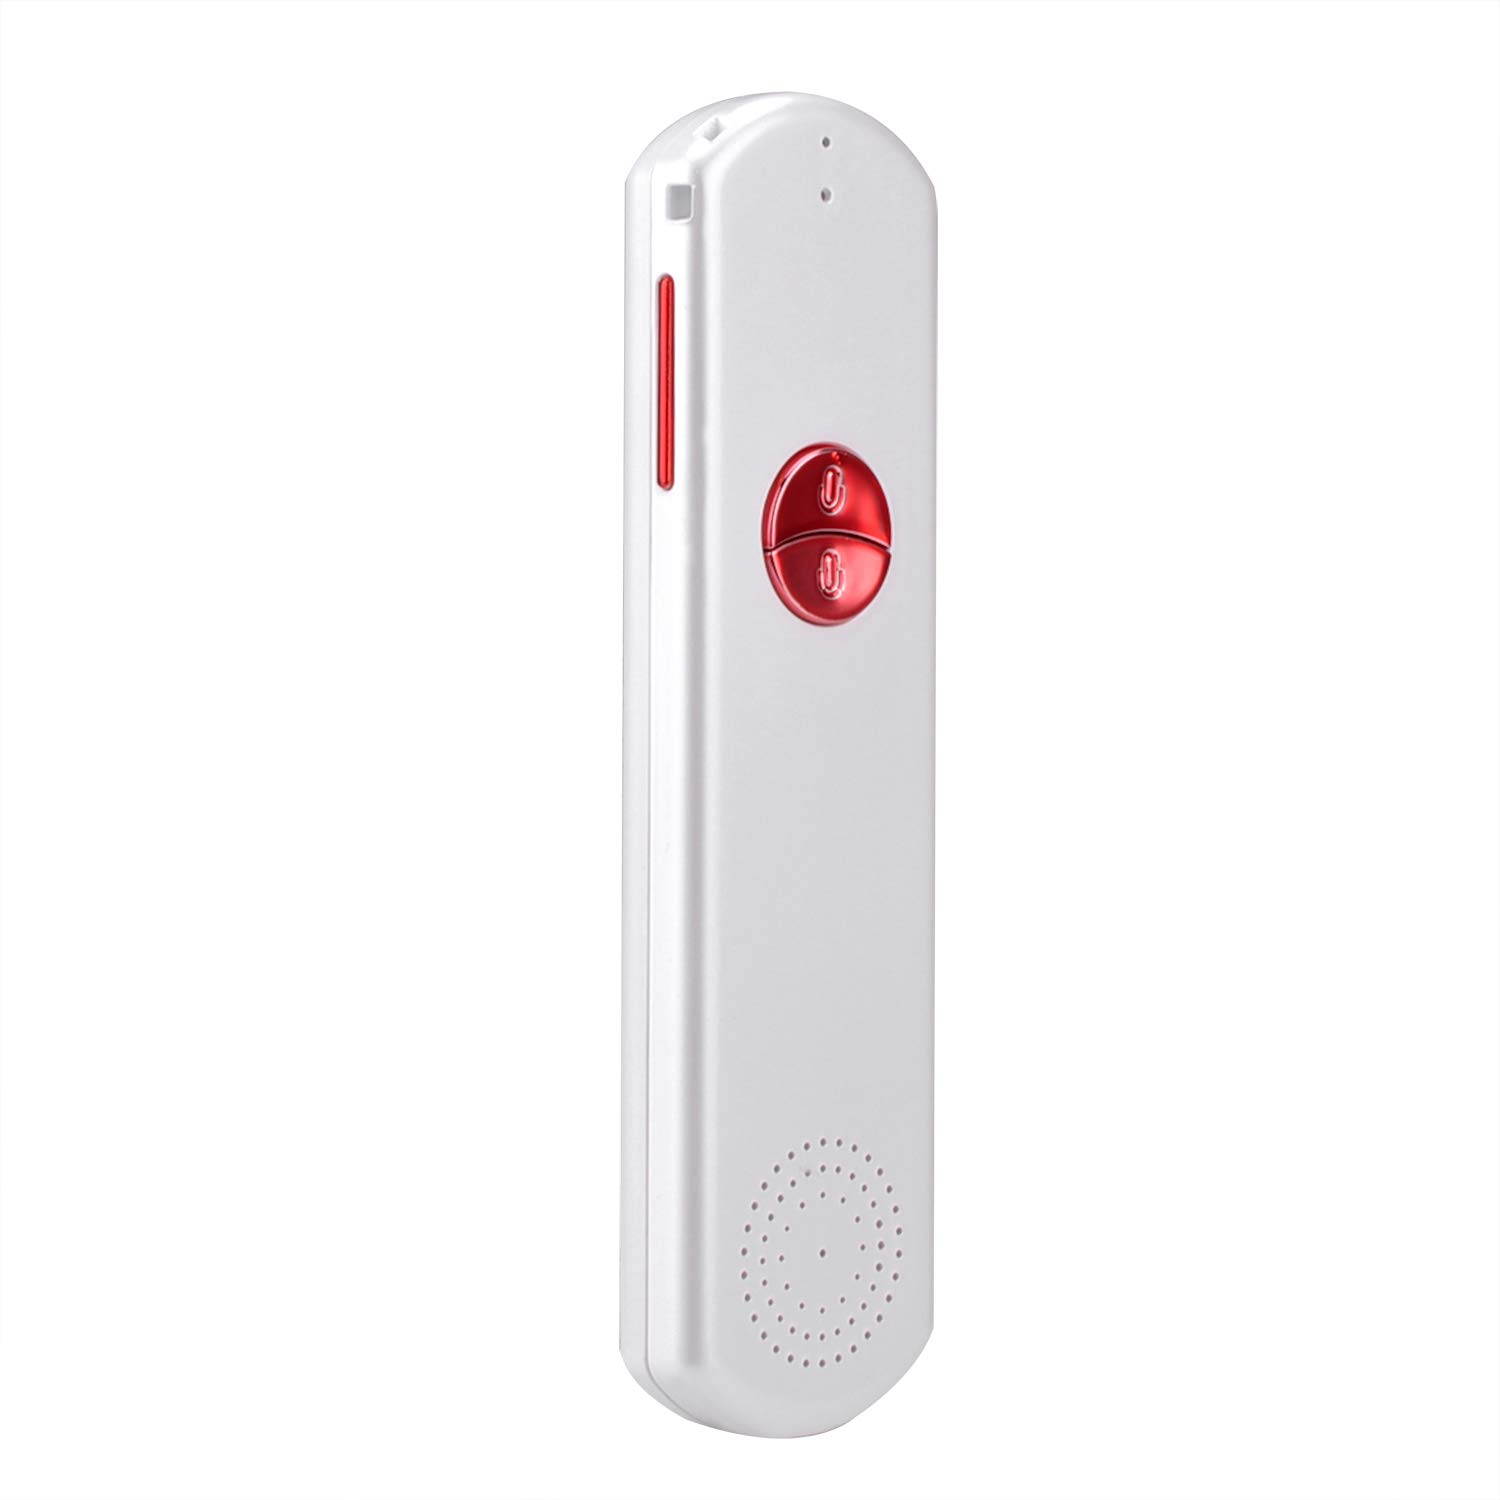 Two Way Easy Trans Smart Language Translator Device Electronic Pocket Voice Bluetooth 52 Languages for Meeting Learning Travel Shopping Business Fit for Apple iPhone Android White Red (WIFI/3G/4G/5G)